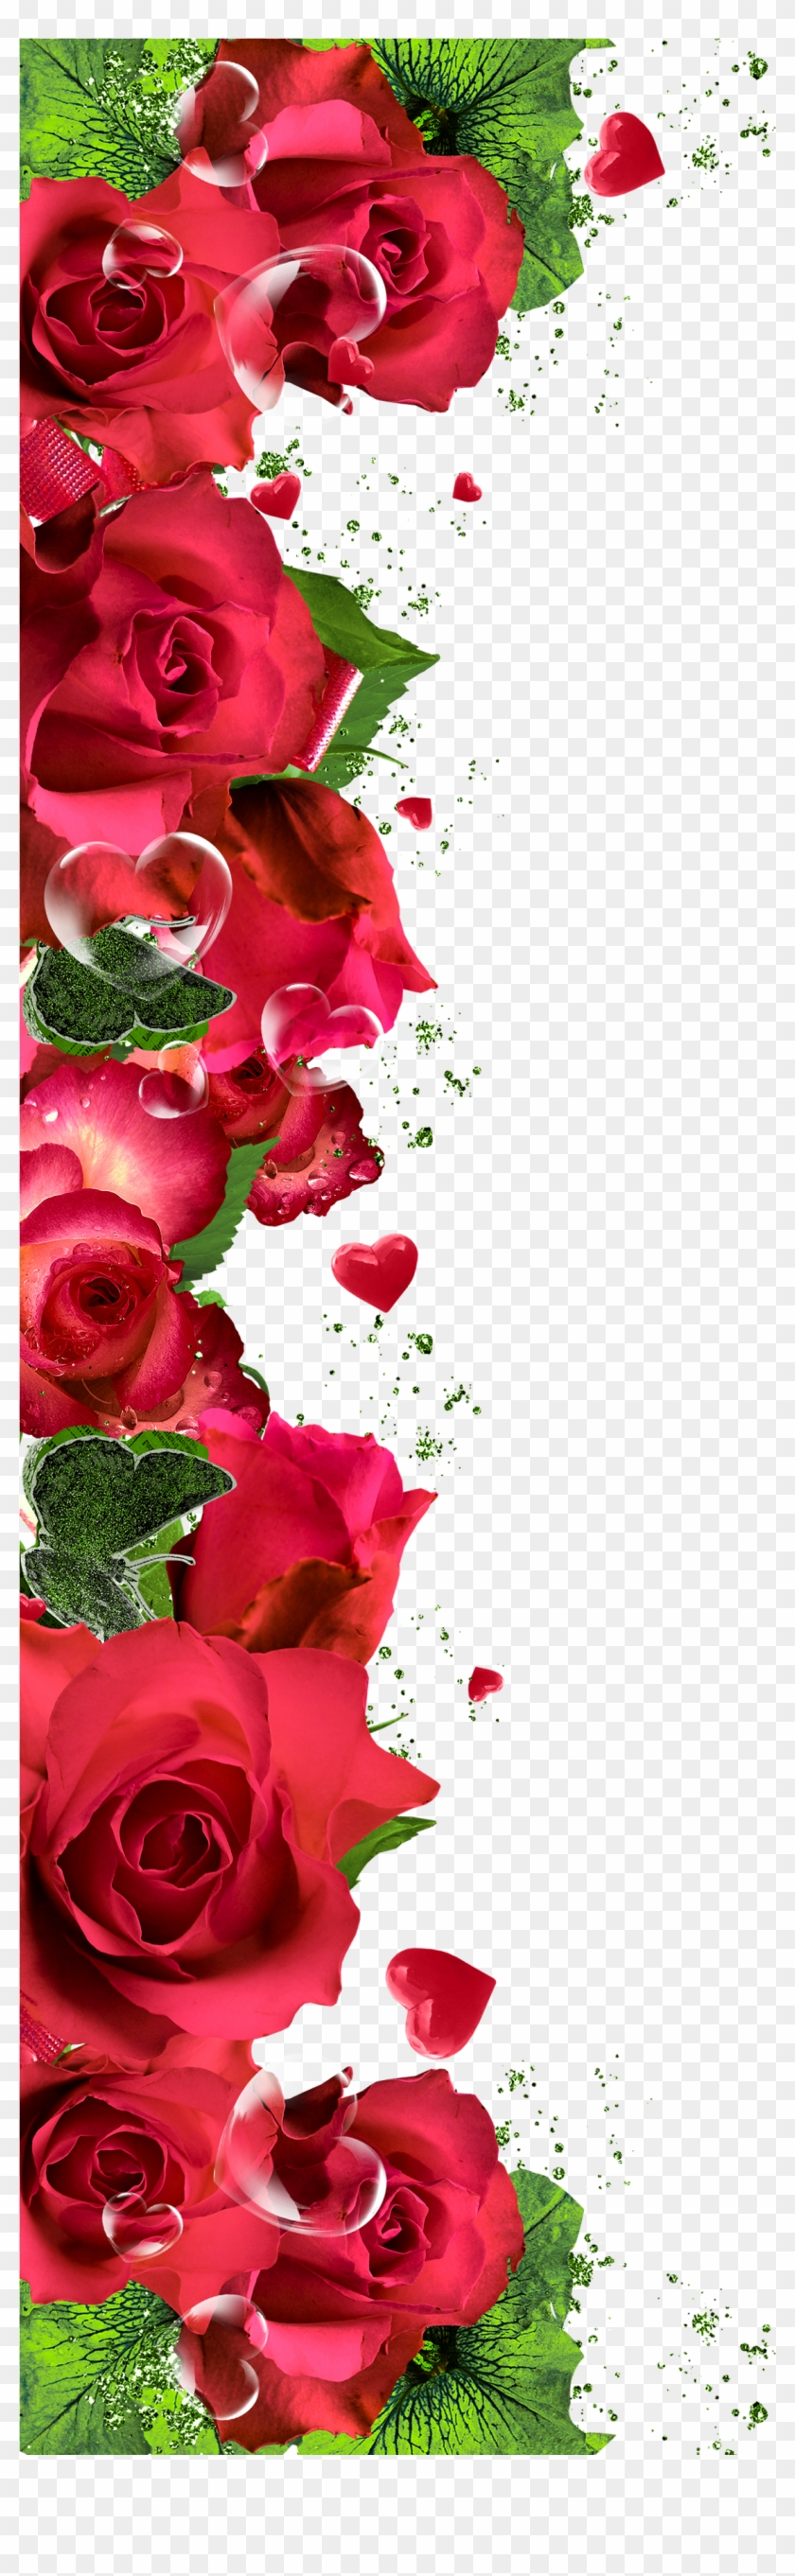 Wallpapers Of Rose Posted By Samantha Peltier